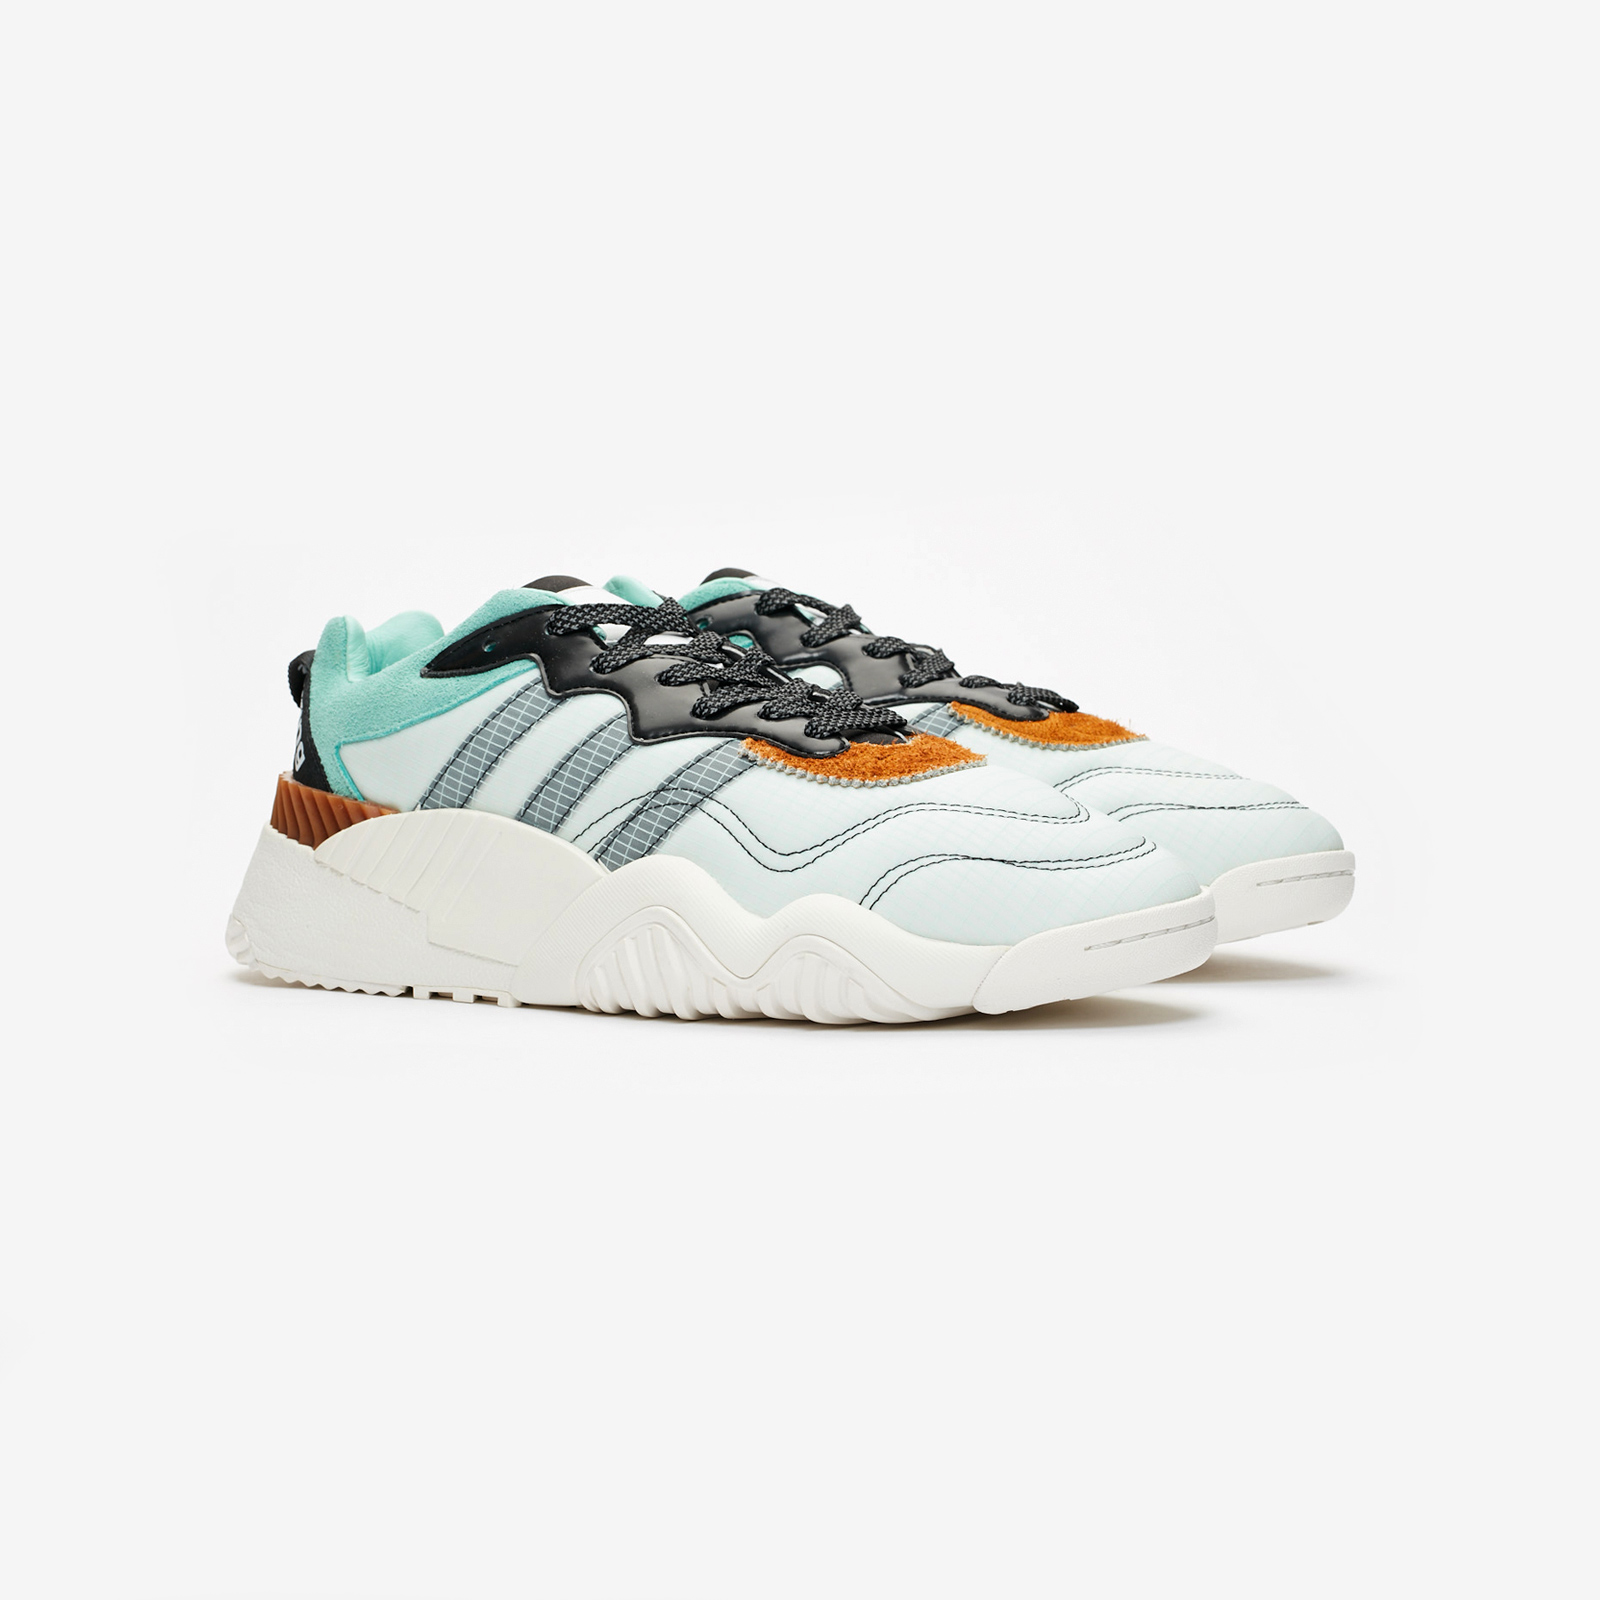 reputable site 98a45 50518 adidas Originals by Alexander Wang AW Turnout Trainer